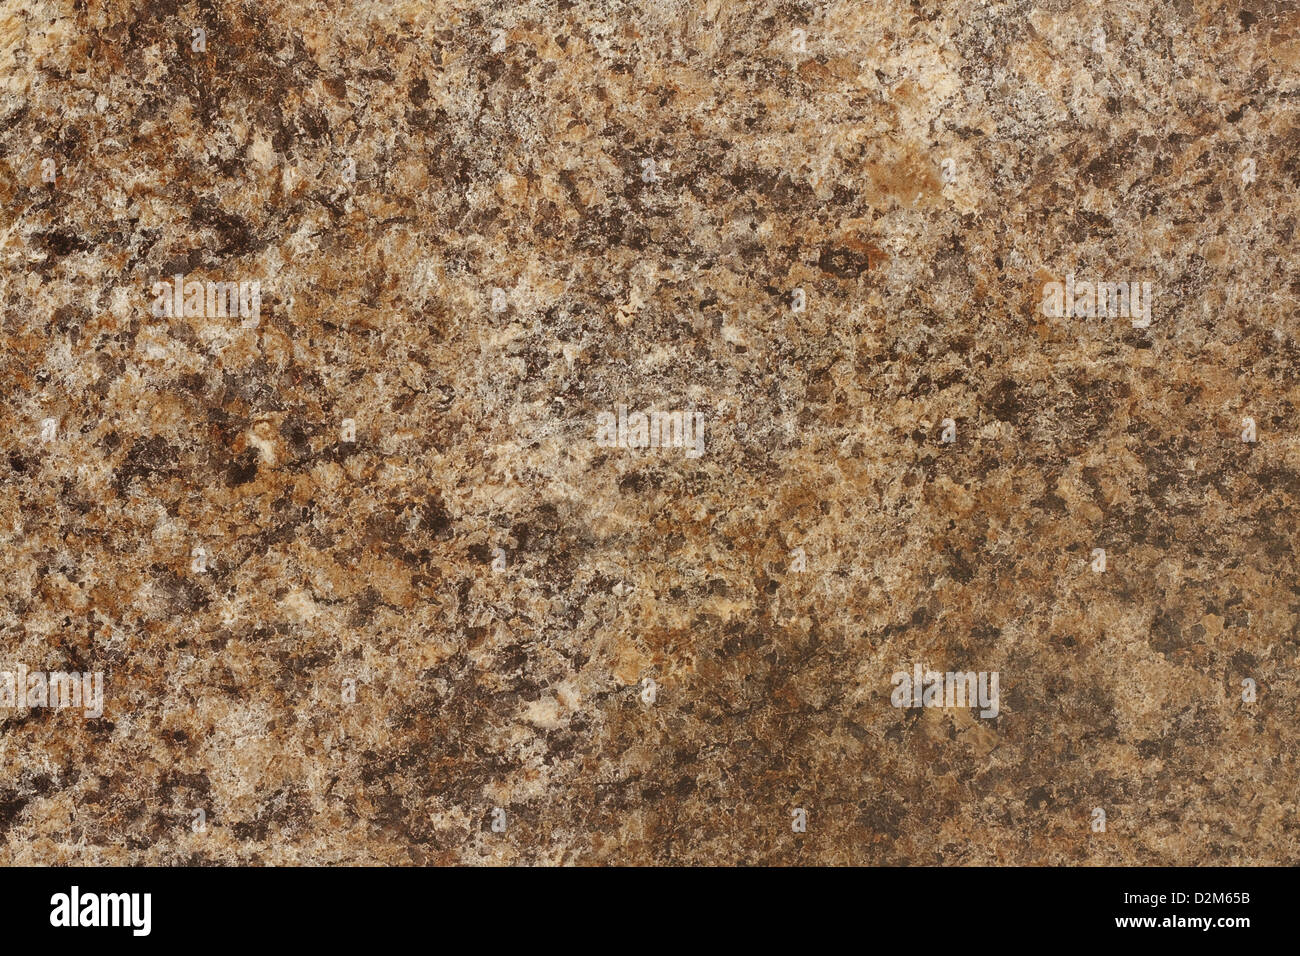 Stone Background of mottled granite igneous rock used for kitchen worktops etc - Stock Image